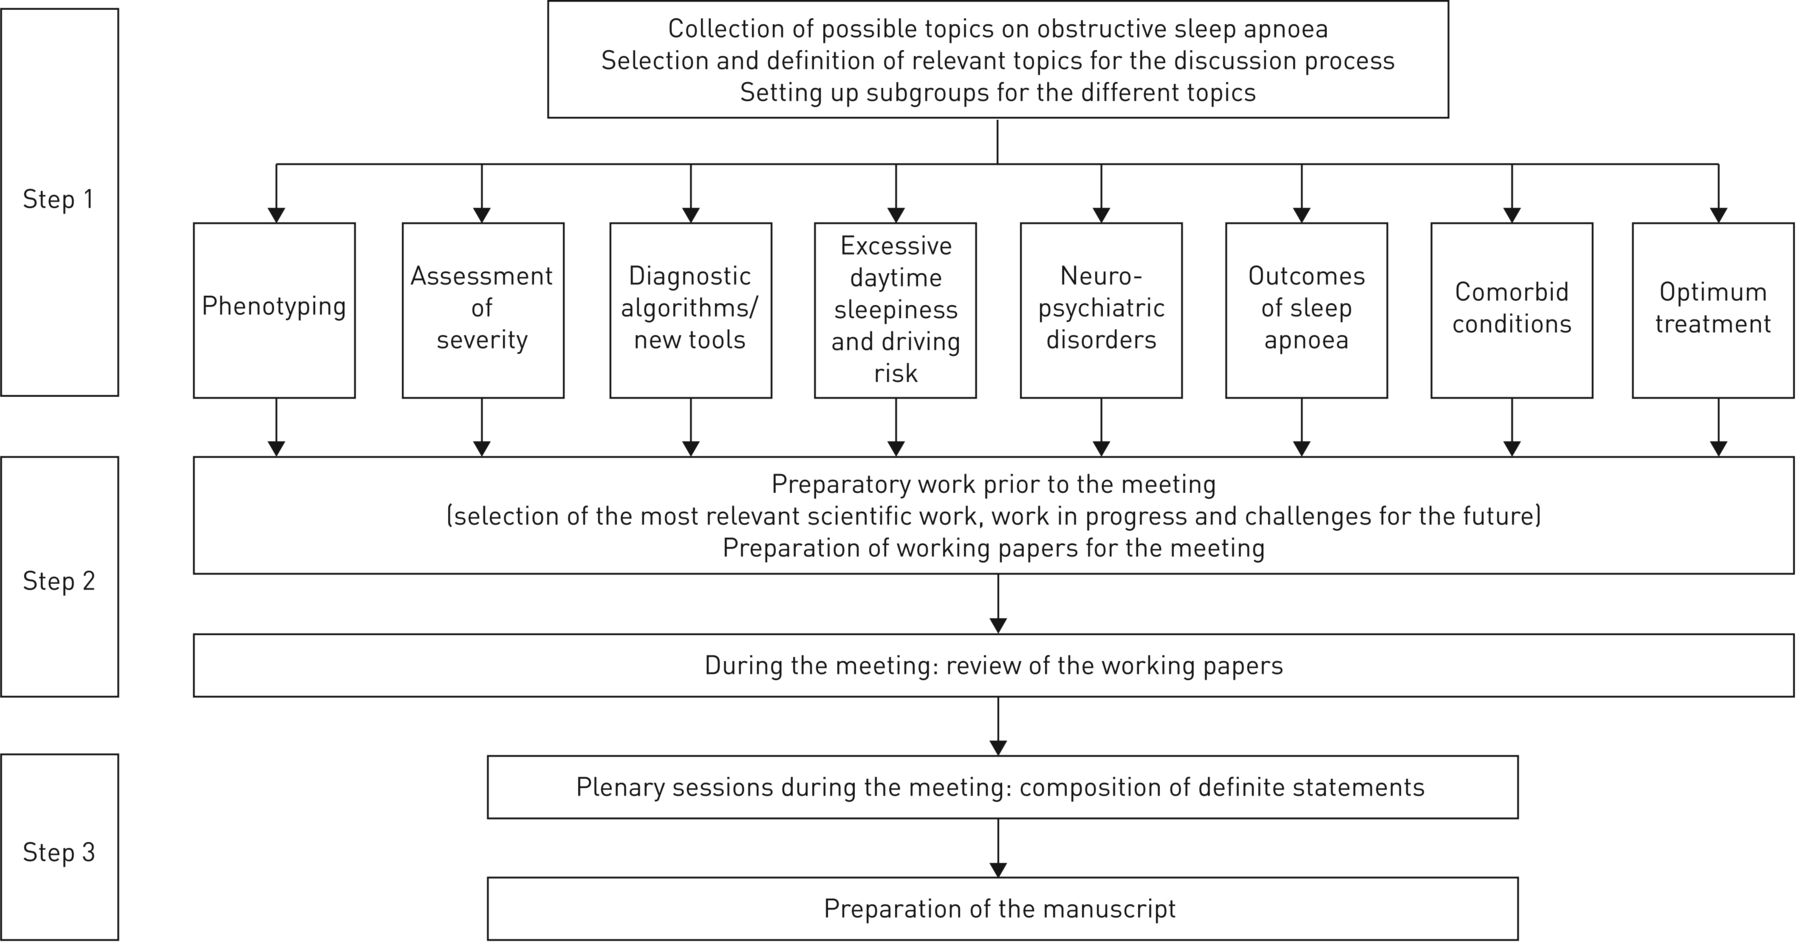 Challenges and perspectives in obstructive sleep apnoea